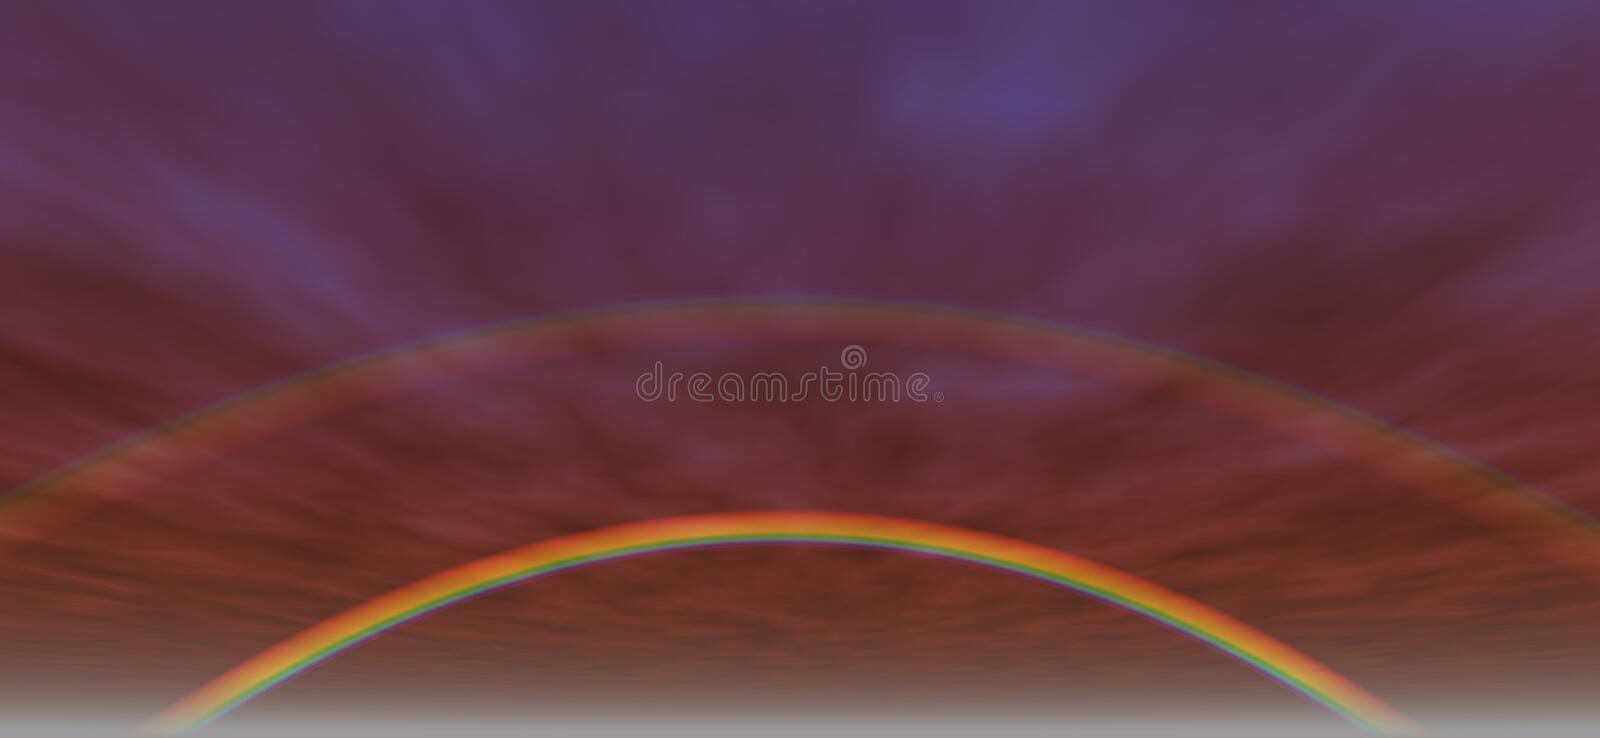 Fond 3 d'arc-en-ciel illustration libre de droits